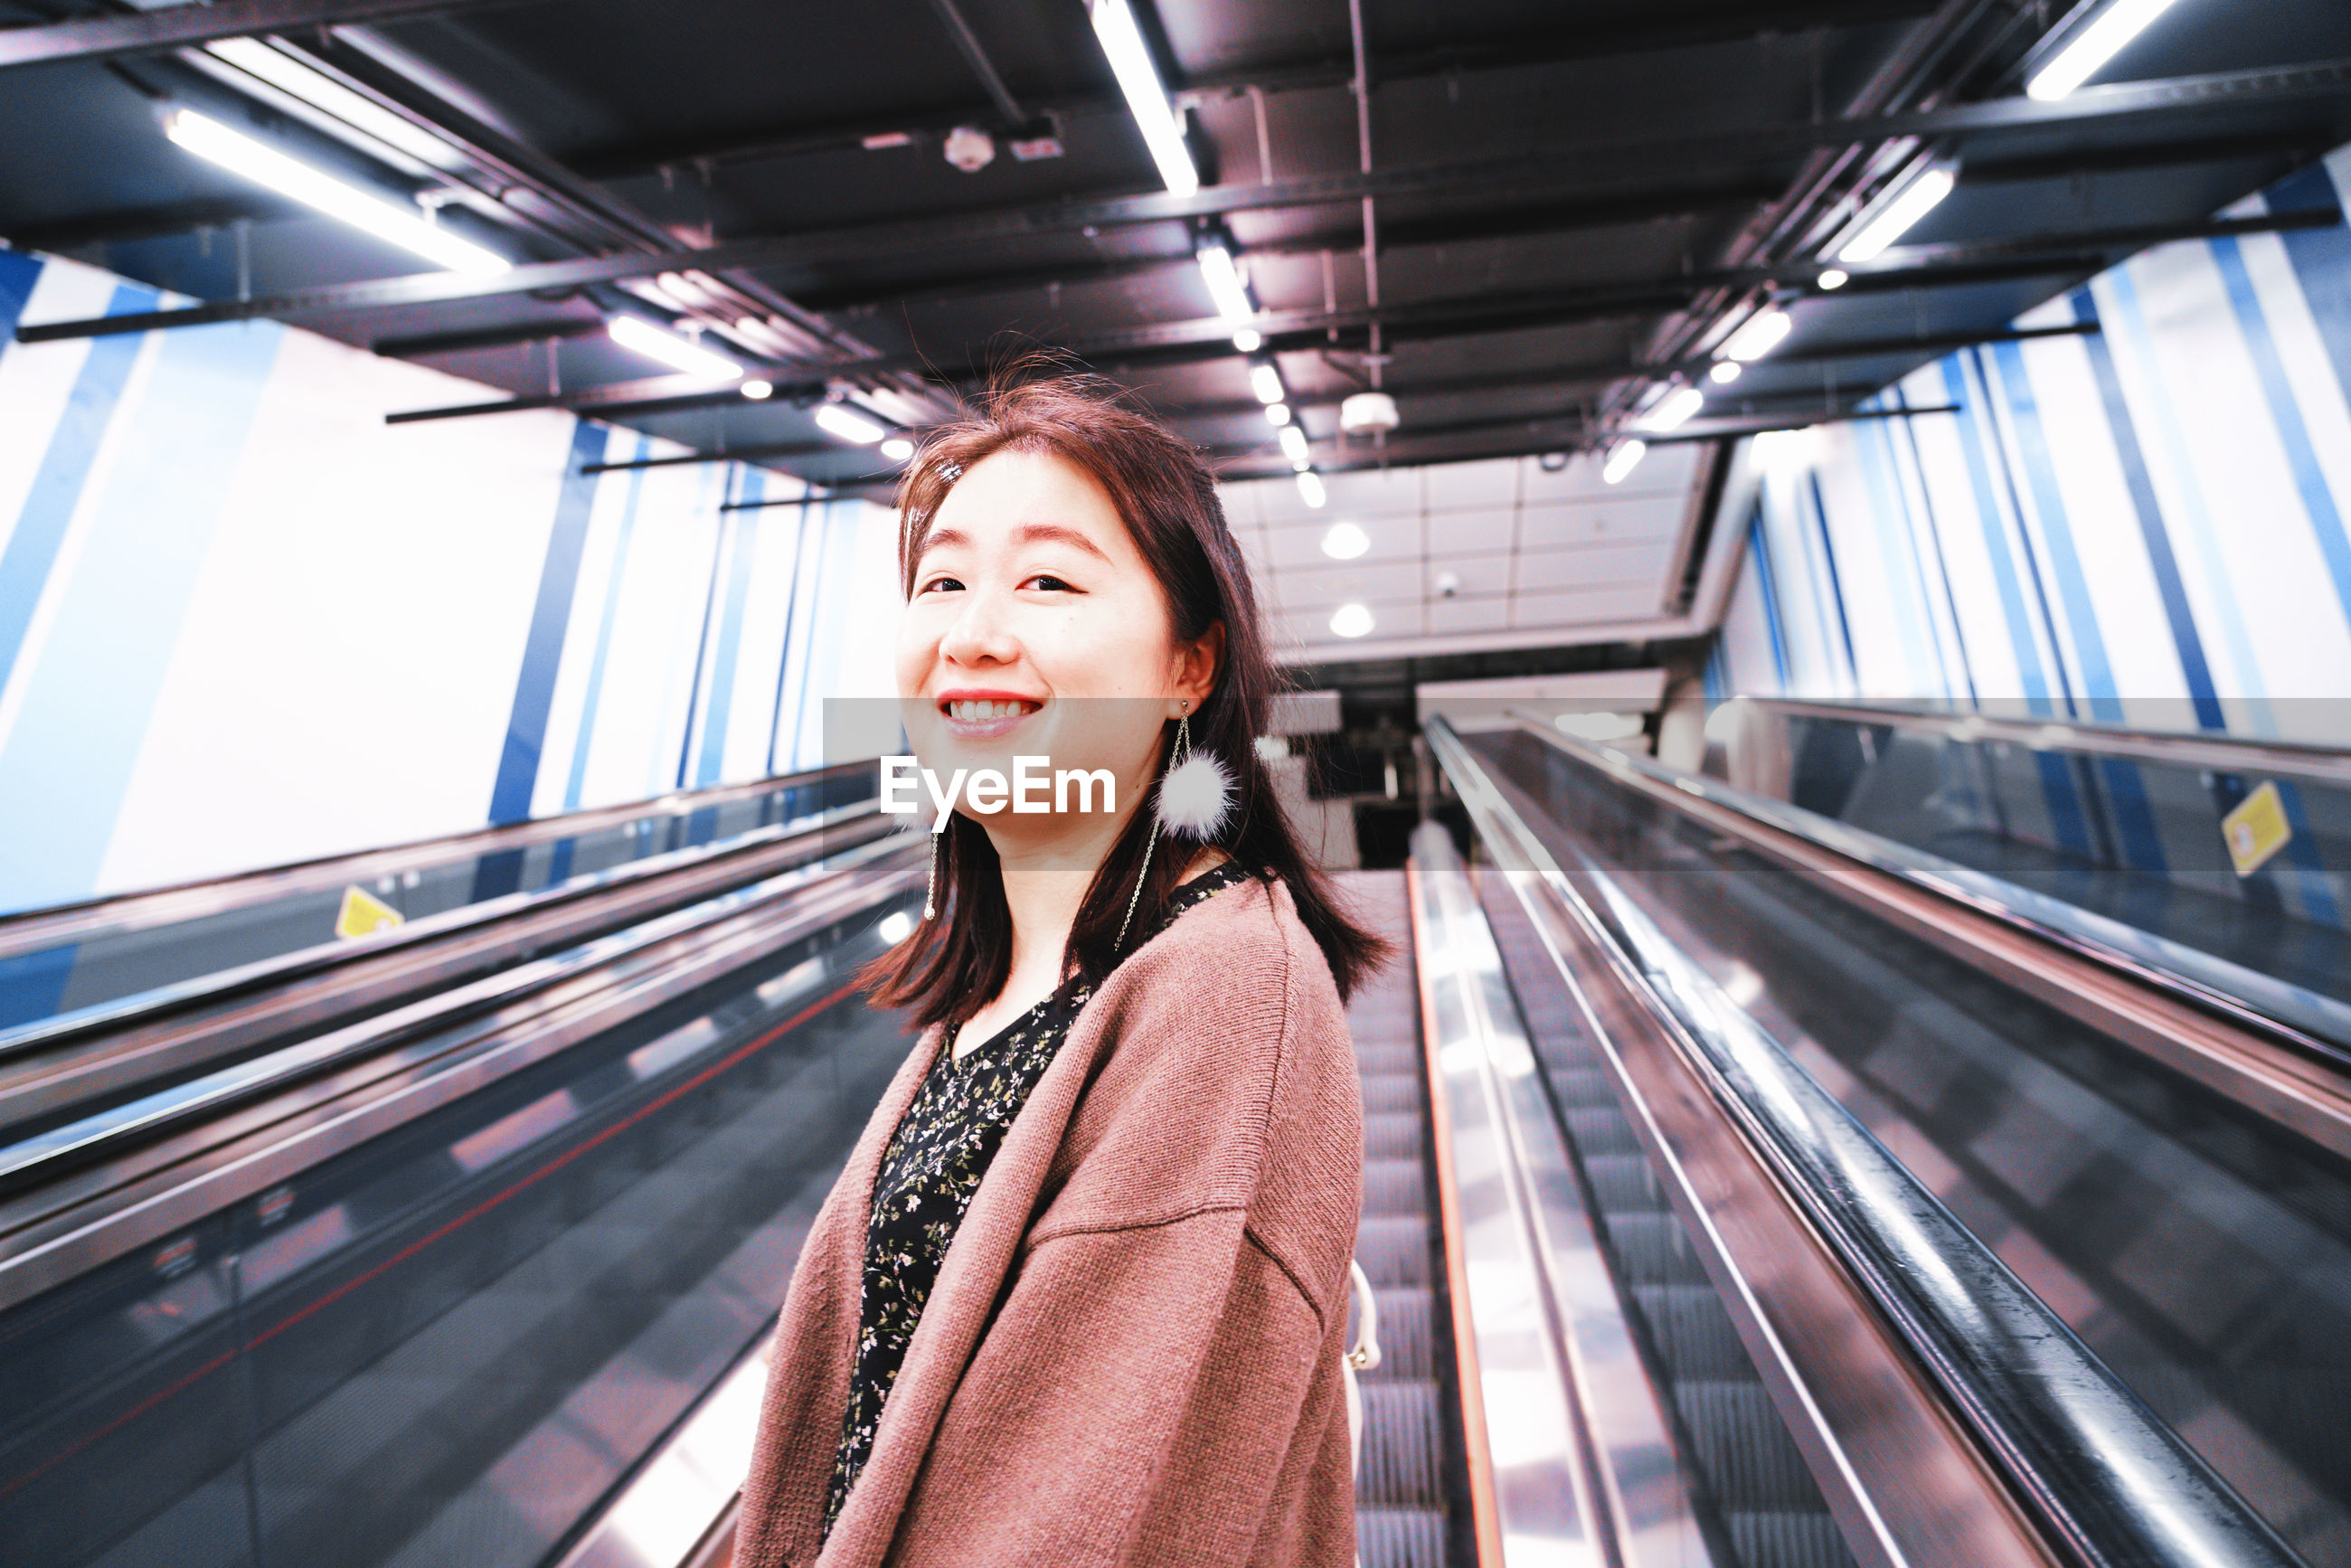 women, adult, one person, smiling, transportation, escalator, happiness, young adult, architecture, emotion, technology, indoors, lifestyles, travel, rail transportation, mode of transportation, motion, city life, city, female, subway station, casual clothing, cheerful, looking, clothing, public transportation, hairstyle, commuter, portrait, person, standing, public transport, on the move, smile, waist up, station, positive emotion, teeth, businesswoman, communication, transport, train, journey, built structure, wireless technology, passenger, leisure activity, business, subway train